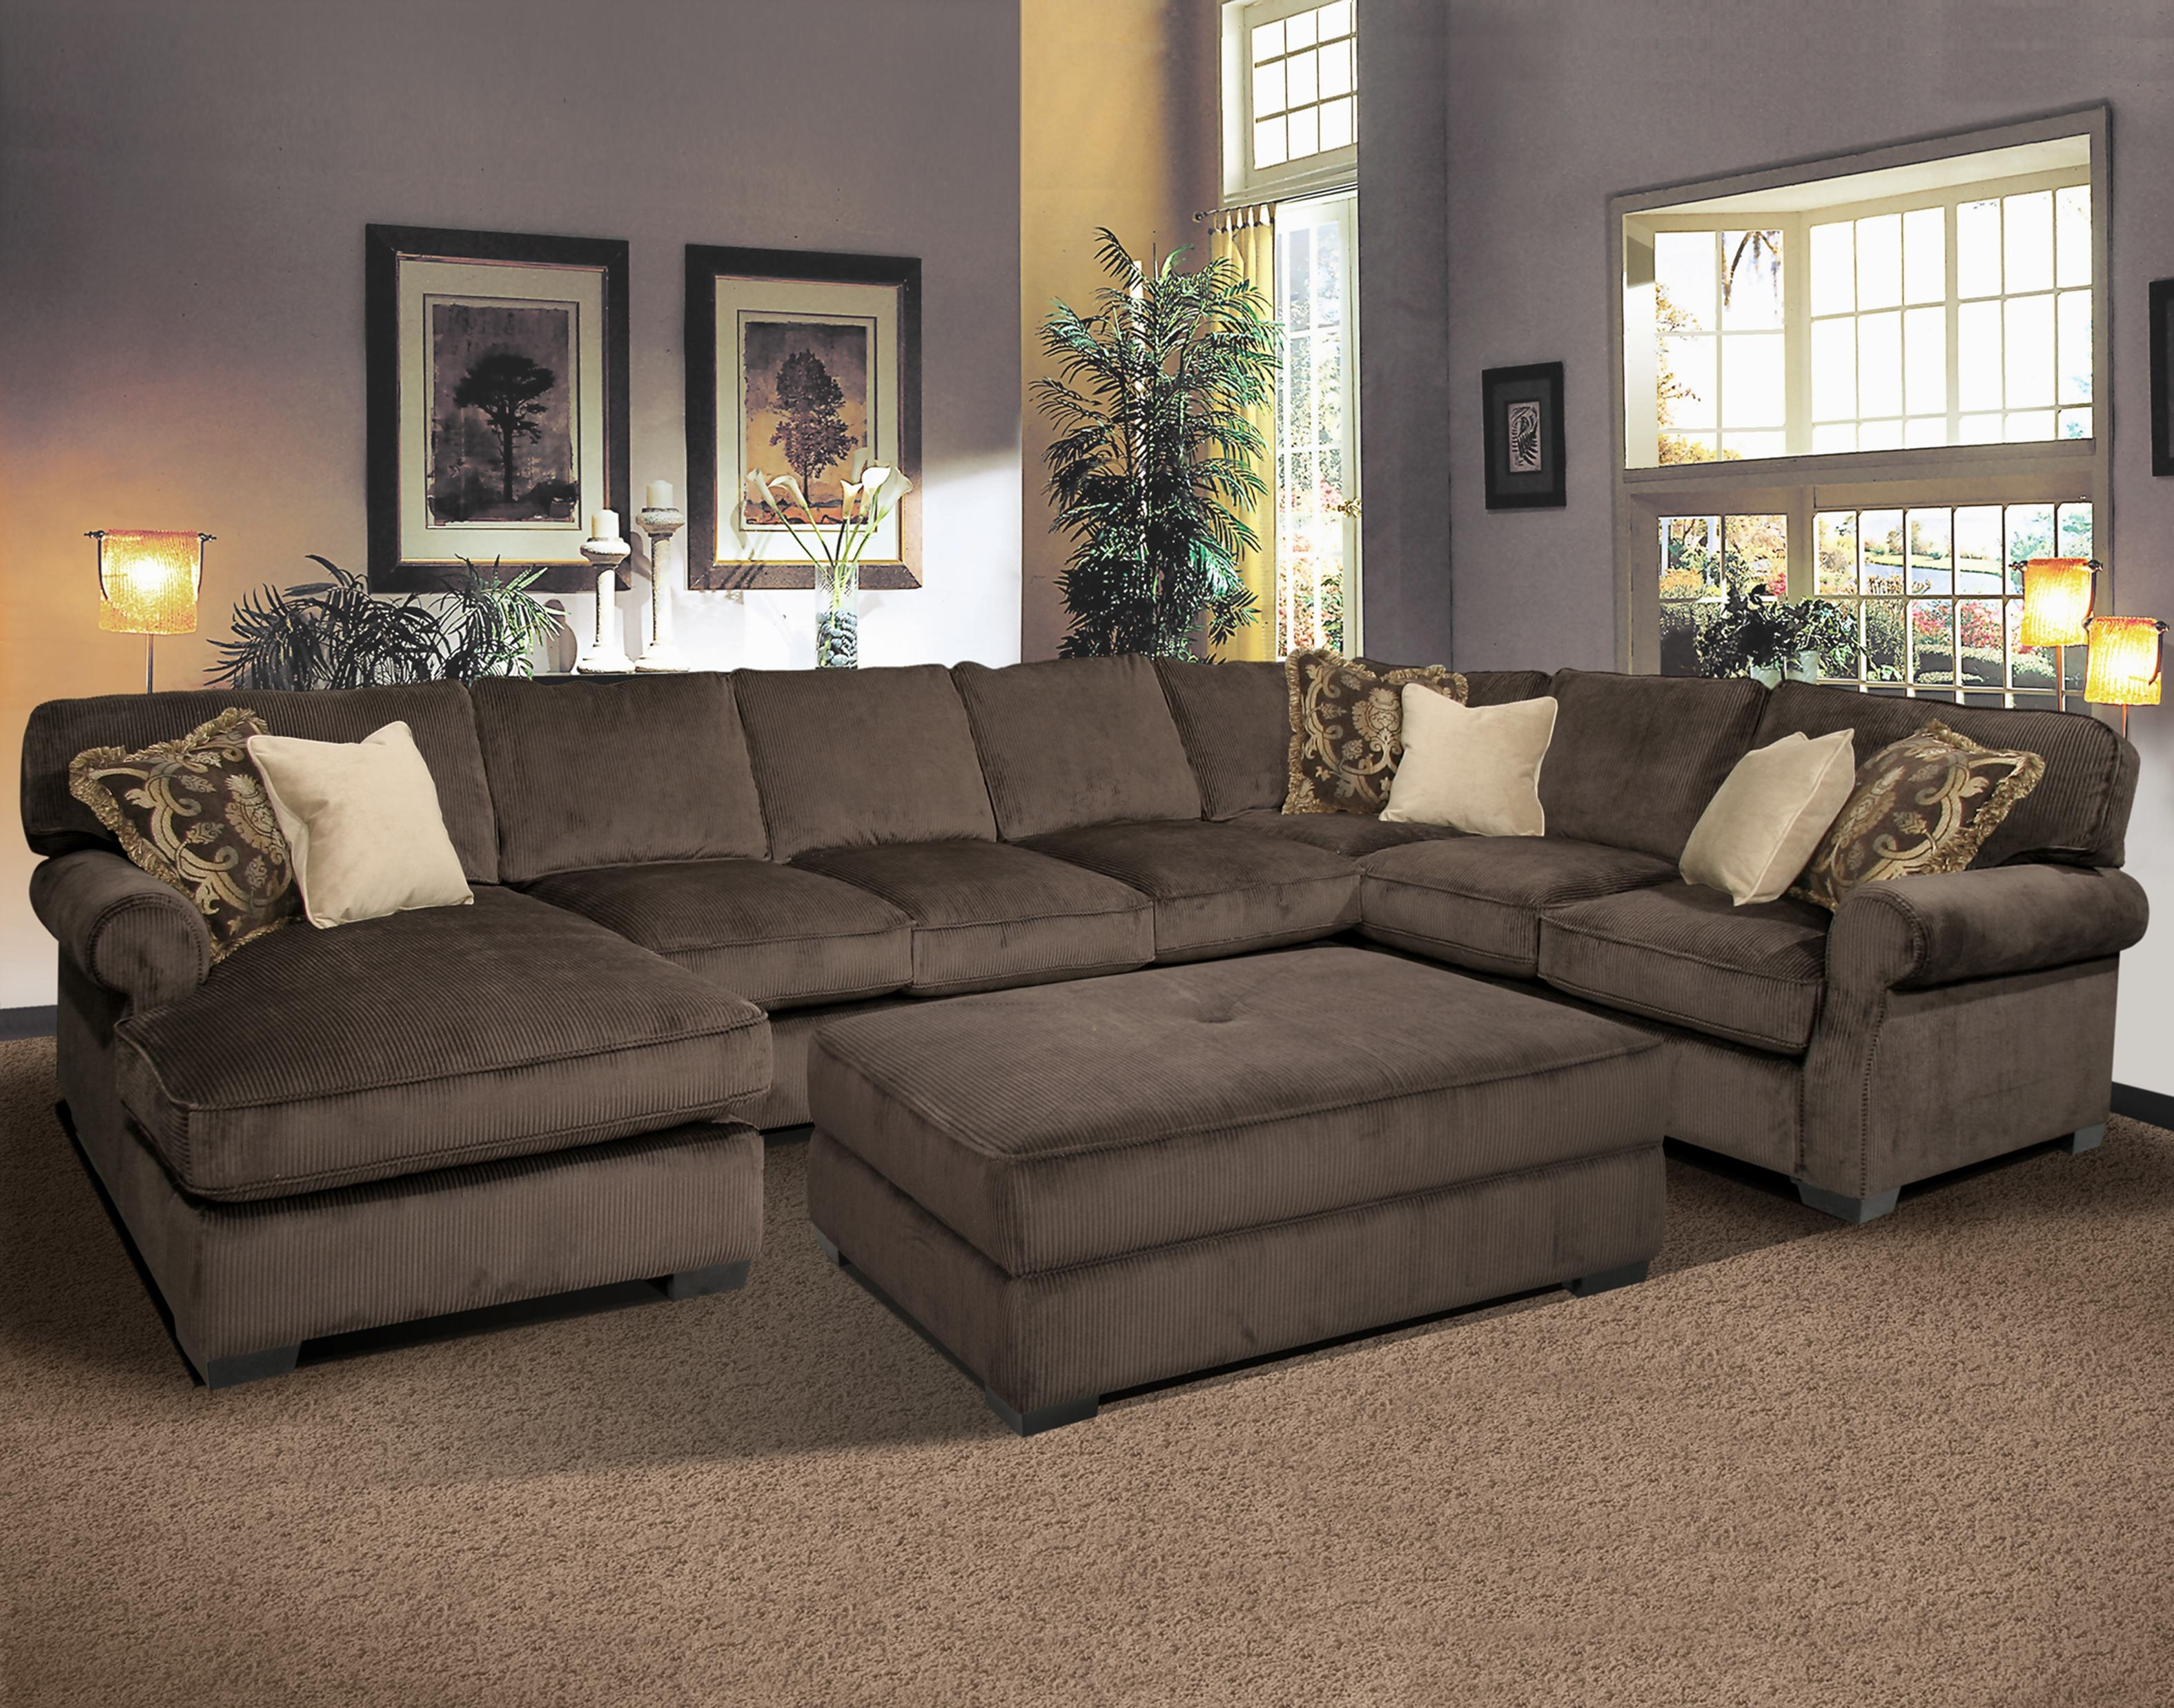 Awesome Comfy Sectional Sofas 26 For Sleeper Sectional Sofa For Inside Comfy Sectional Sofas (Image 1 of 10)